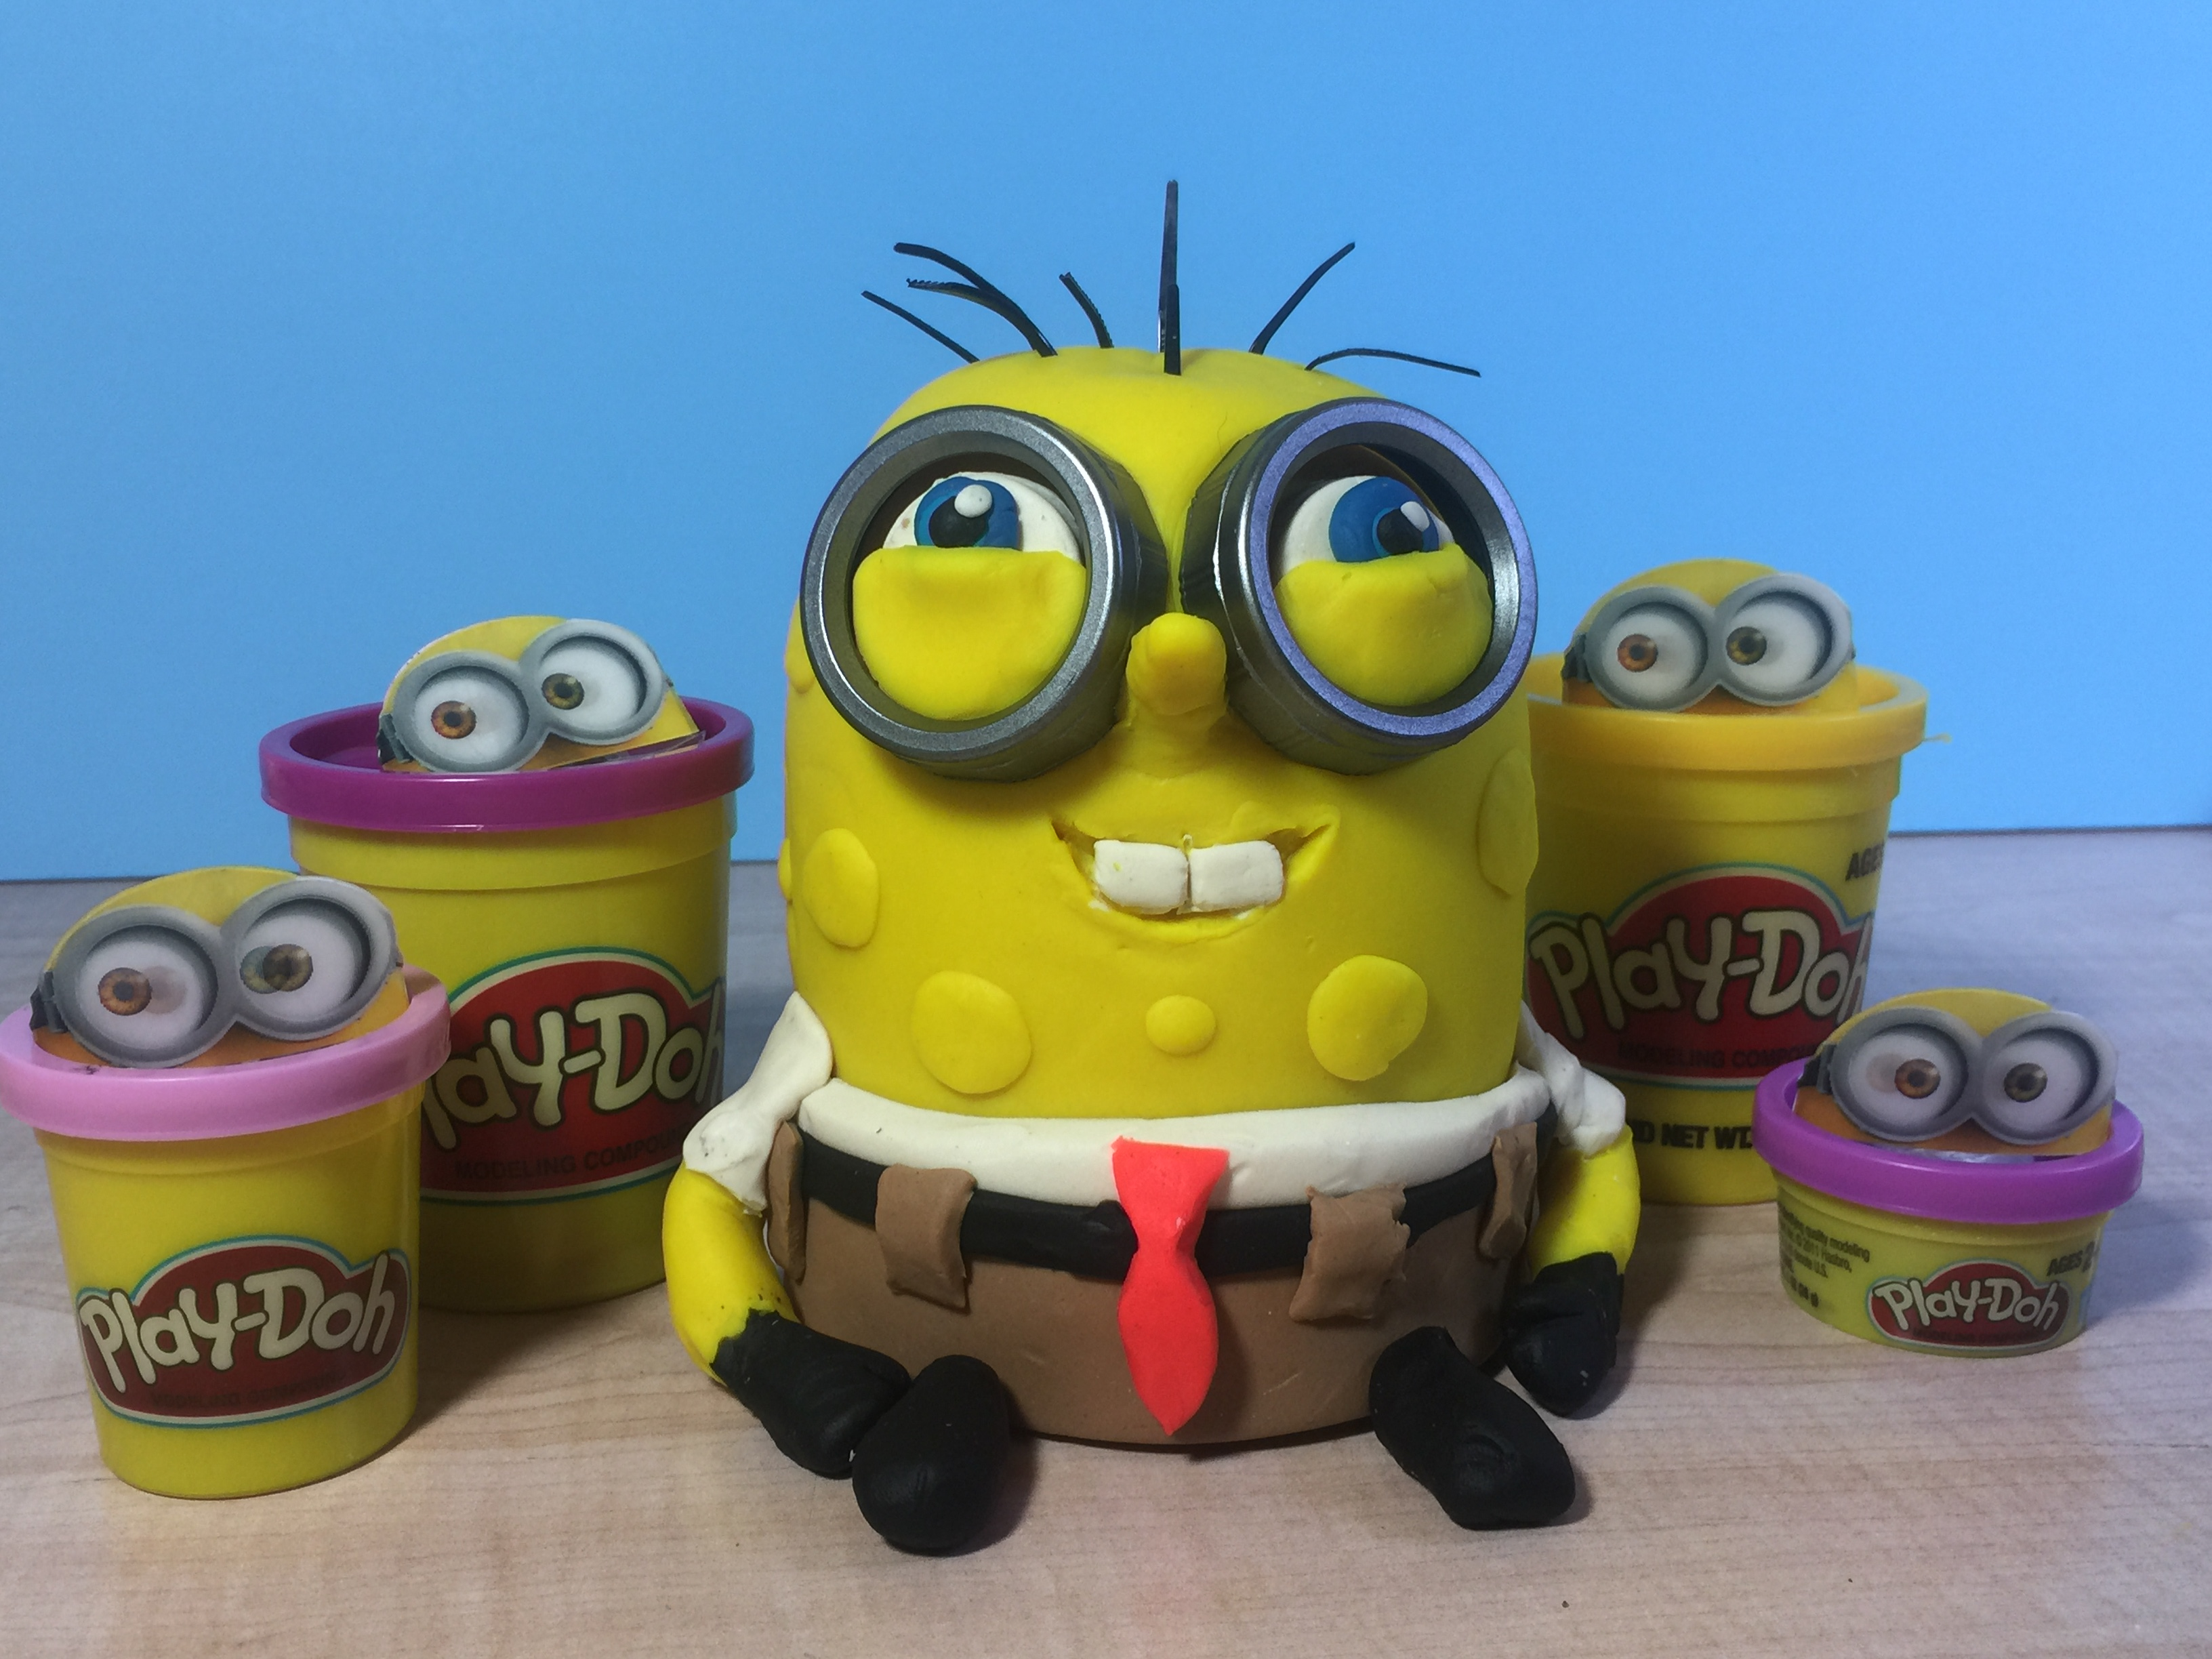 SpongeBob made with Play-Doh